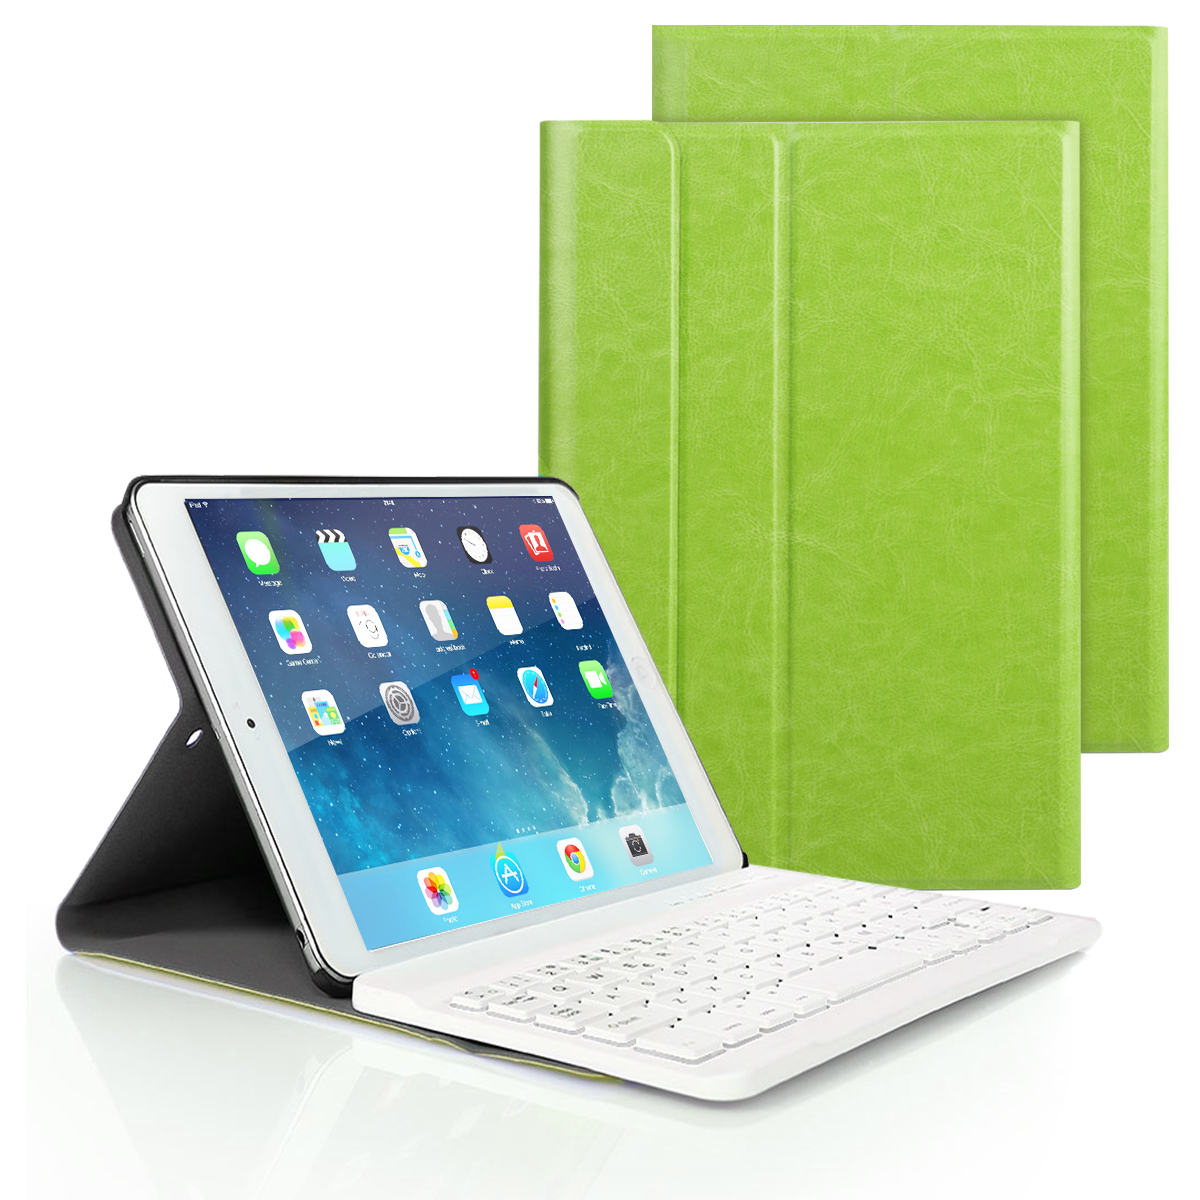 Bluetooth Keyboard PU Leather Case For iPad 2017 2018 / iPad Air 1 2/Pro 9.7 Magnetic Cover Tablet Ipad 5th 6th